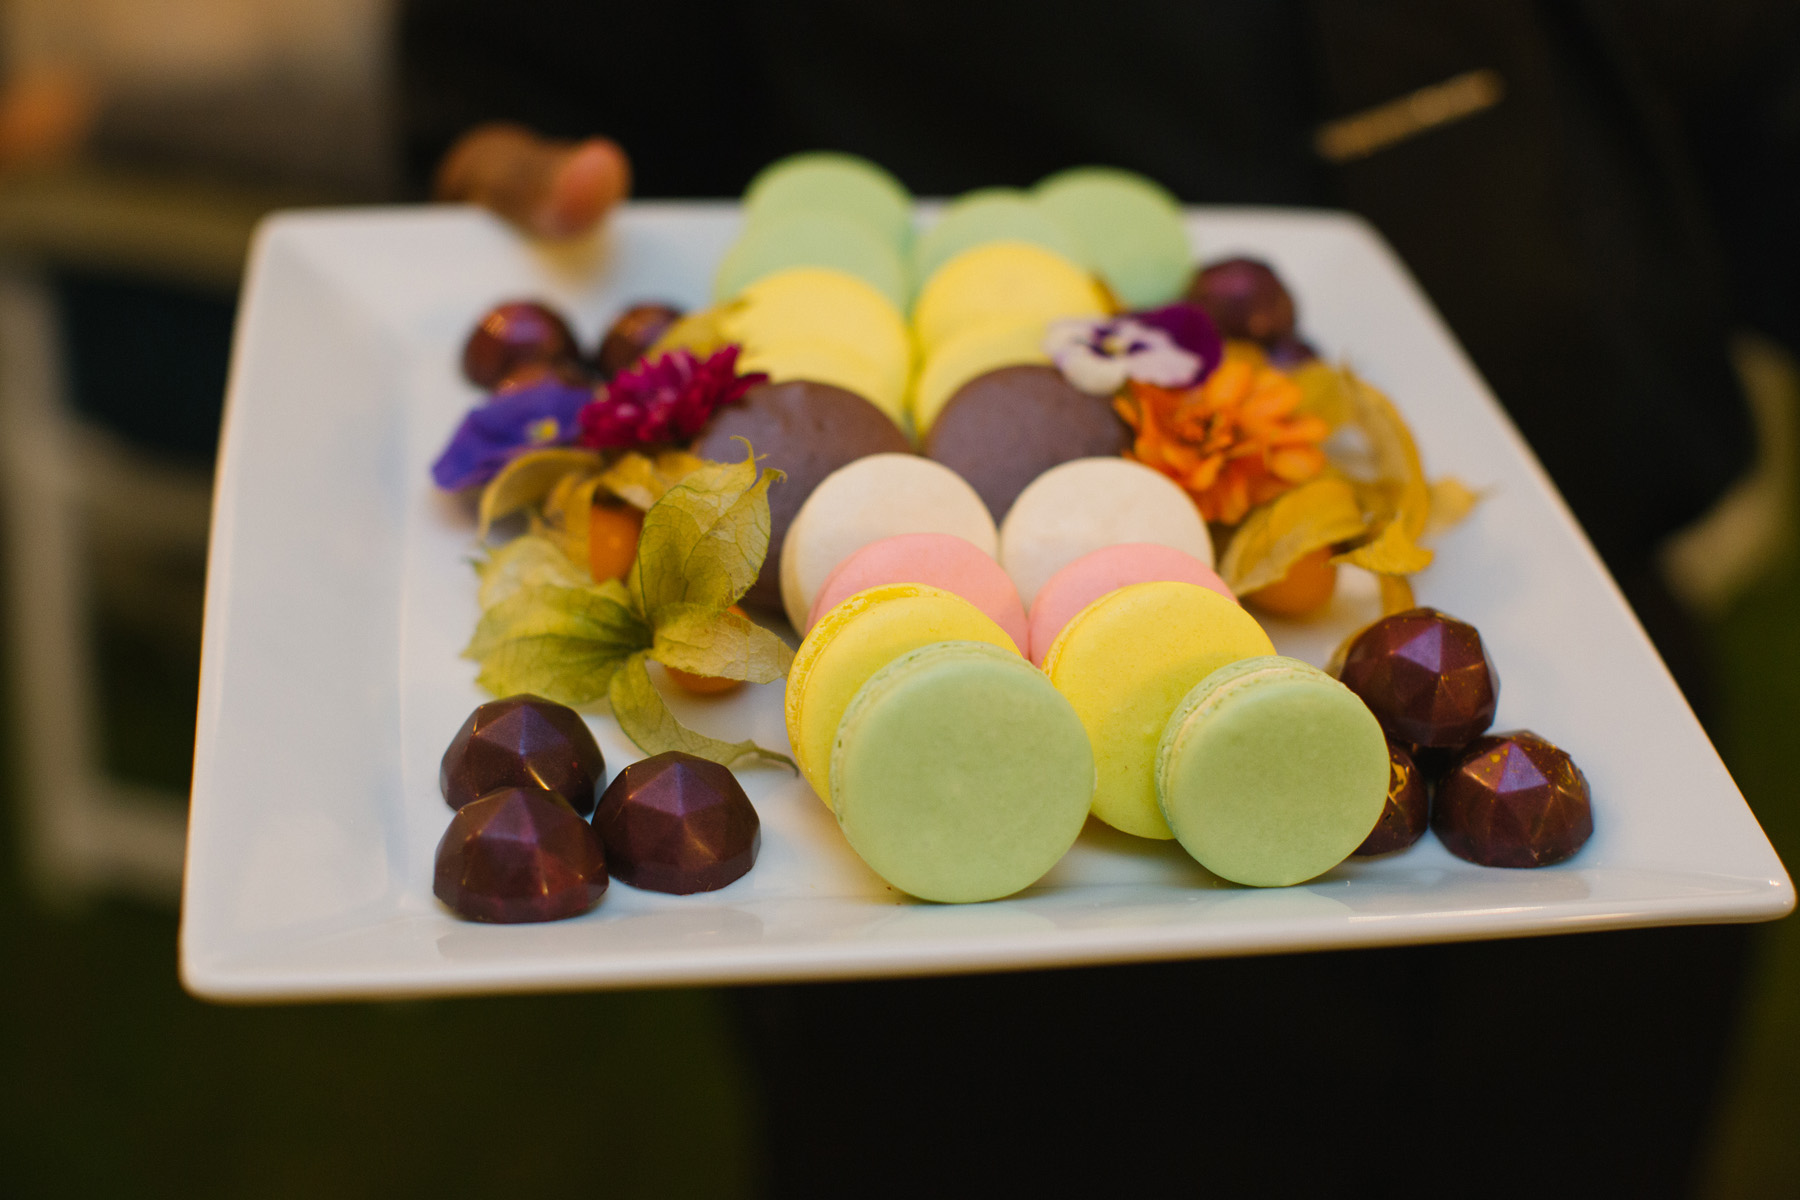 Macaron and sweets plate at a backyard tented Ontario wedding. See more at Rebecca Chan Weddings and Events http://www.rebeccachan.ca